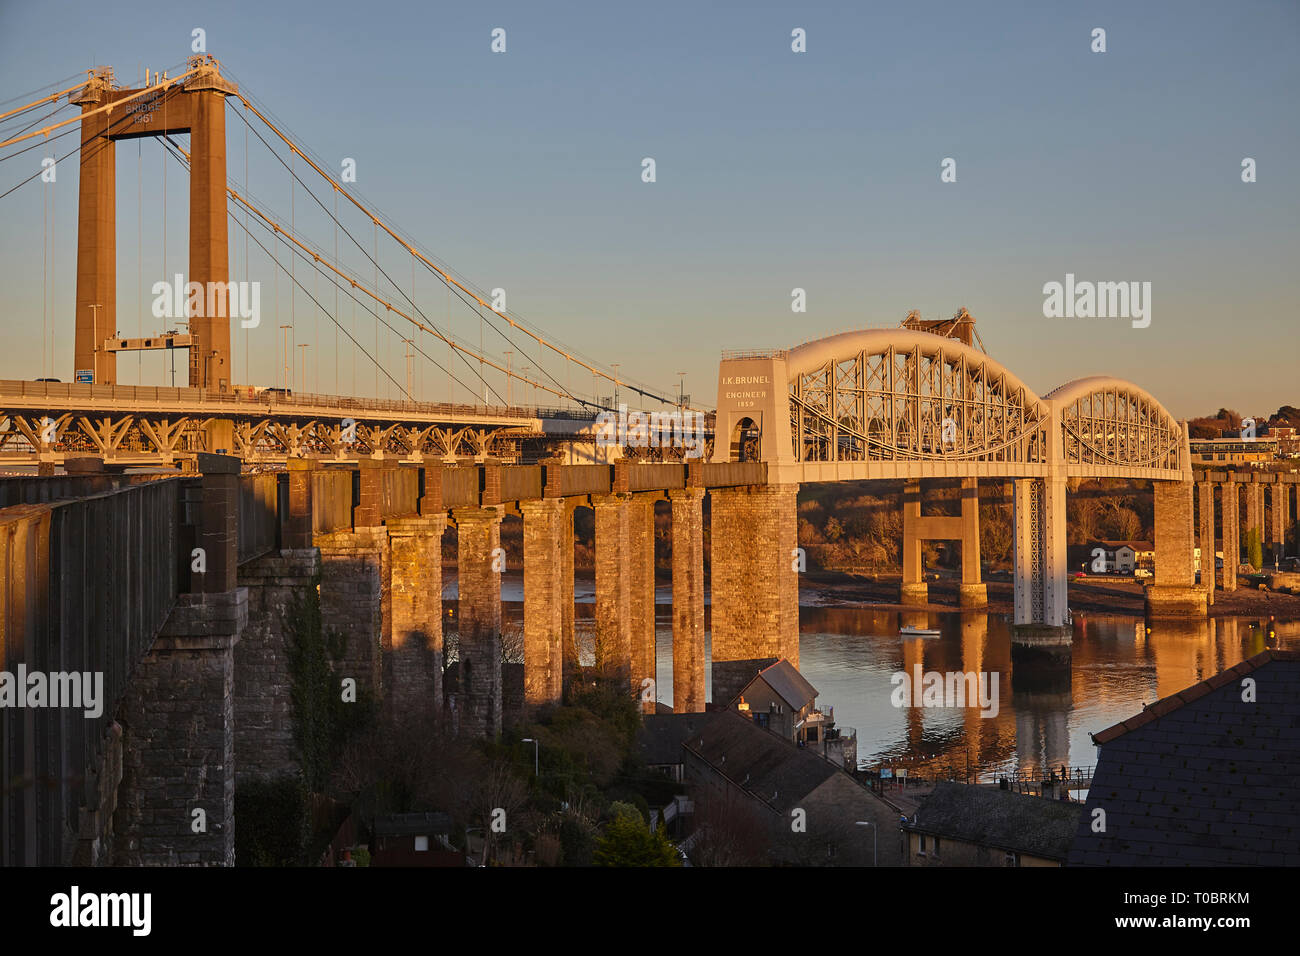 A dusk view of the Tamar Bridges, across the Hamoaze, estuary of the River Tamar, linking Plymouth in Devon and Saltash in Cornwall, Great Britain. Stock Photo